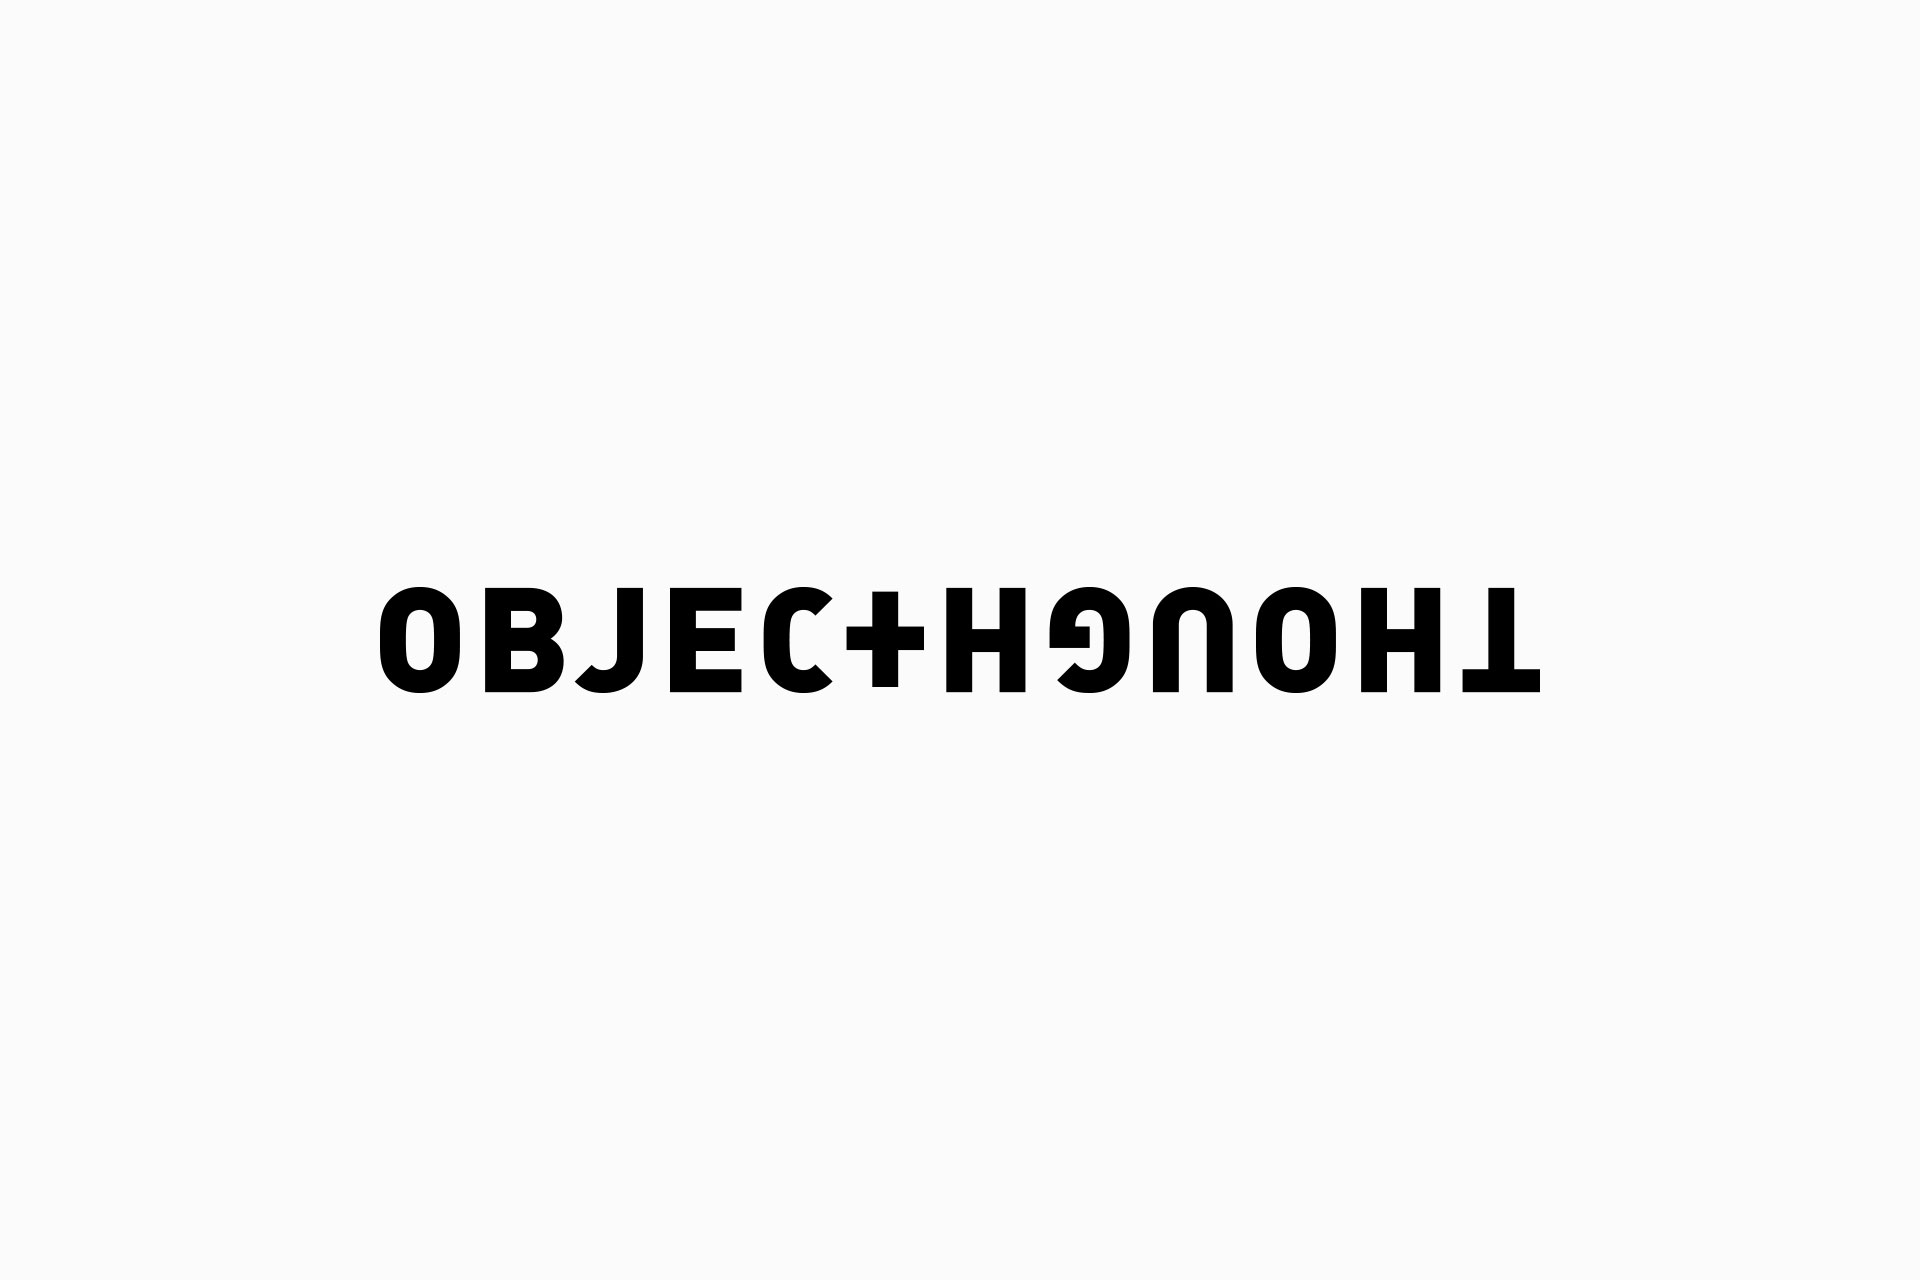 object and thought logo